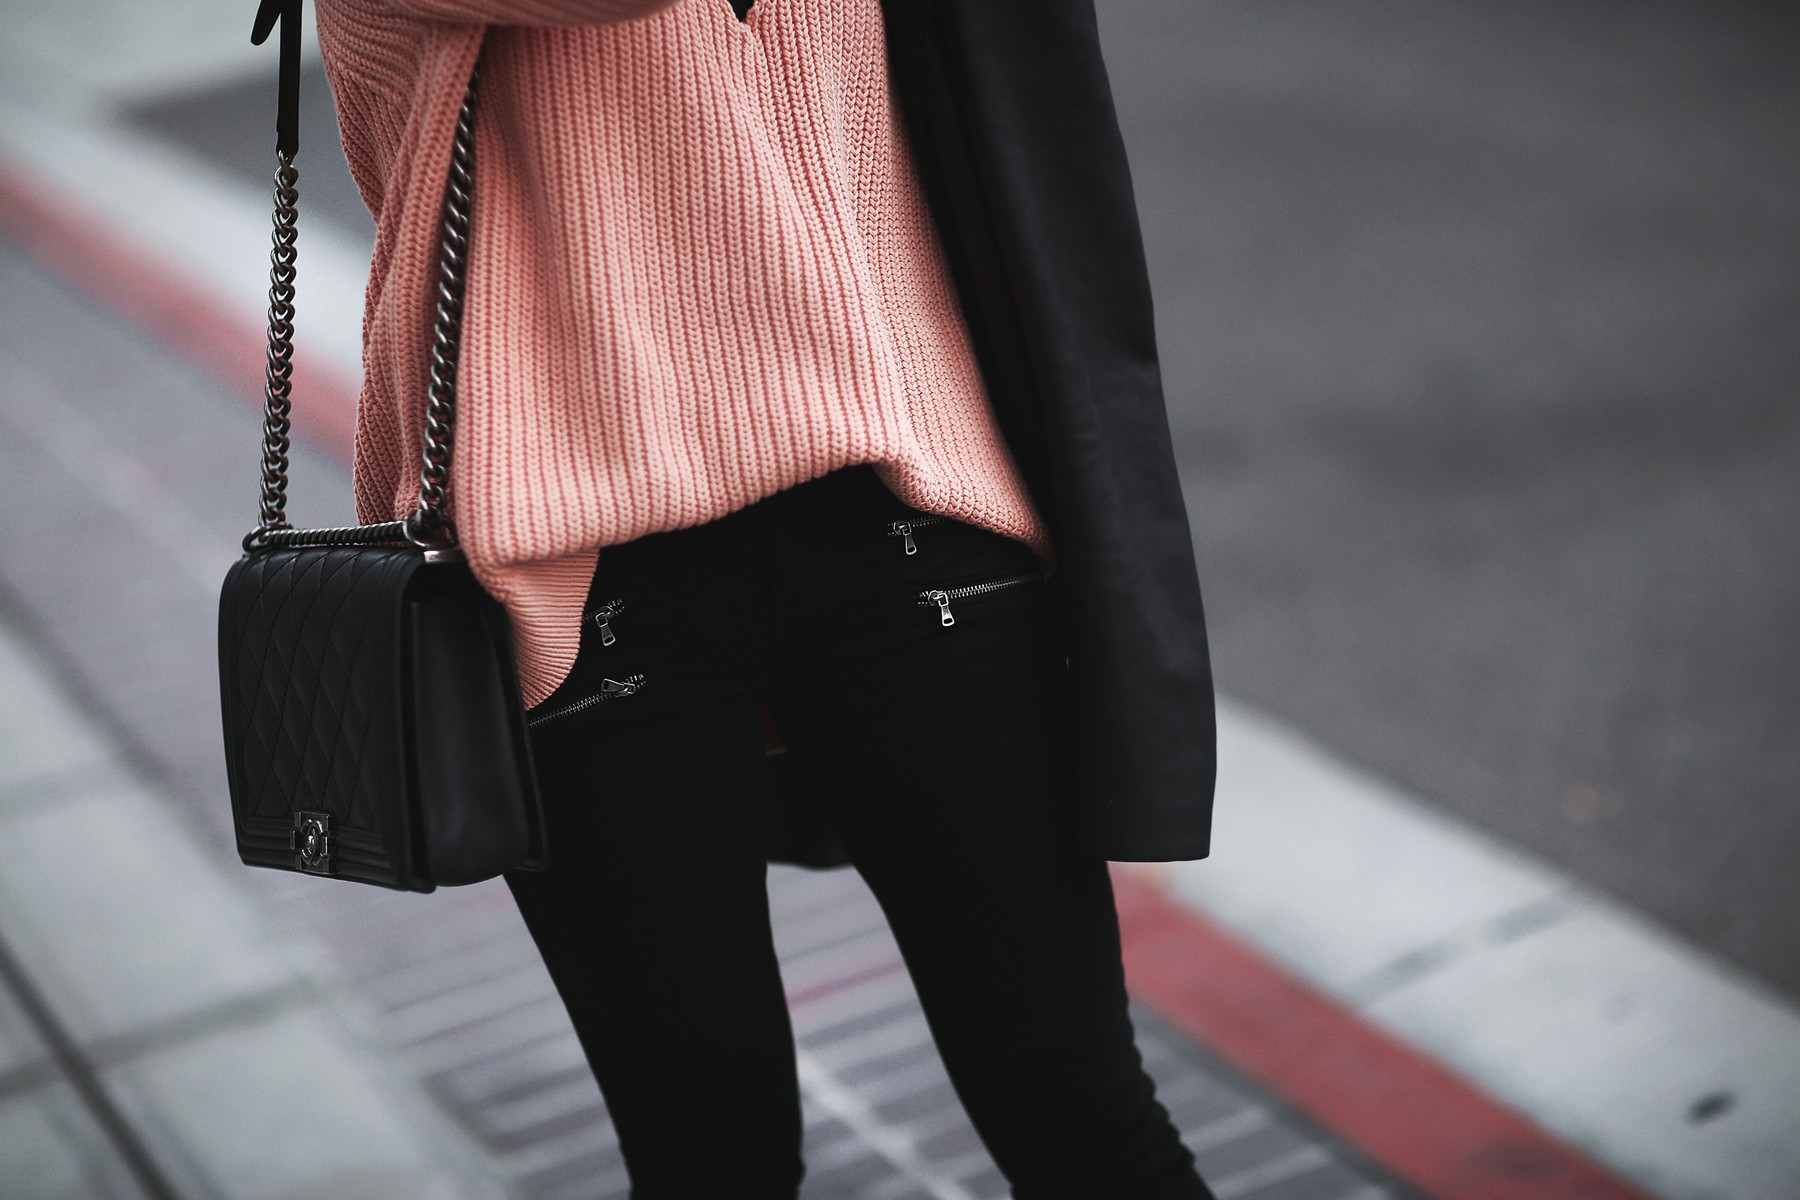 coral sweater, skinny jeans with zippers, black blazer, chanel bag